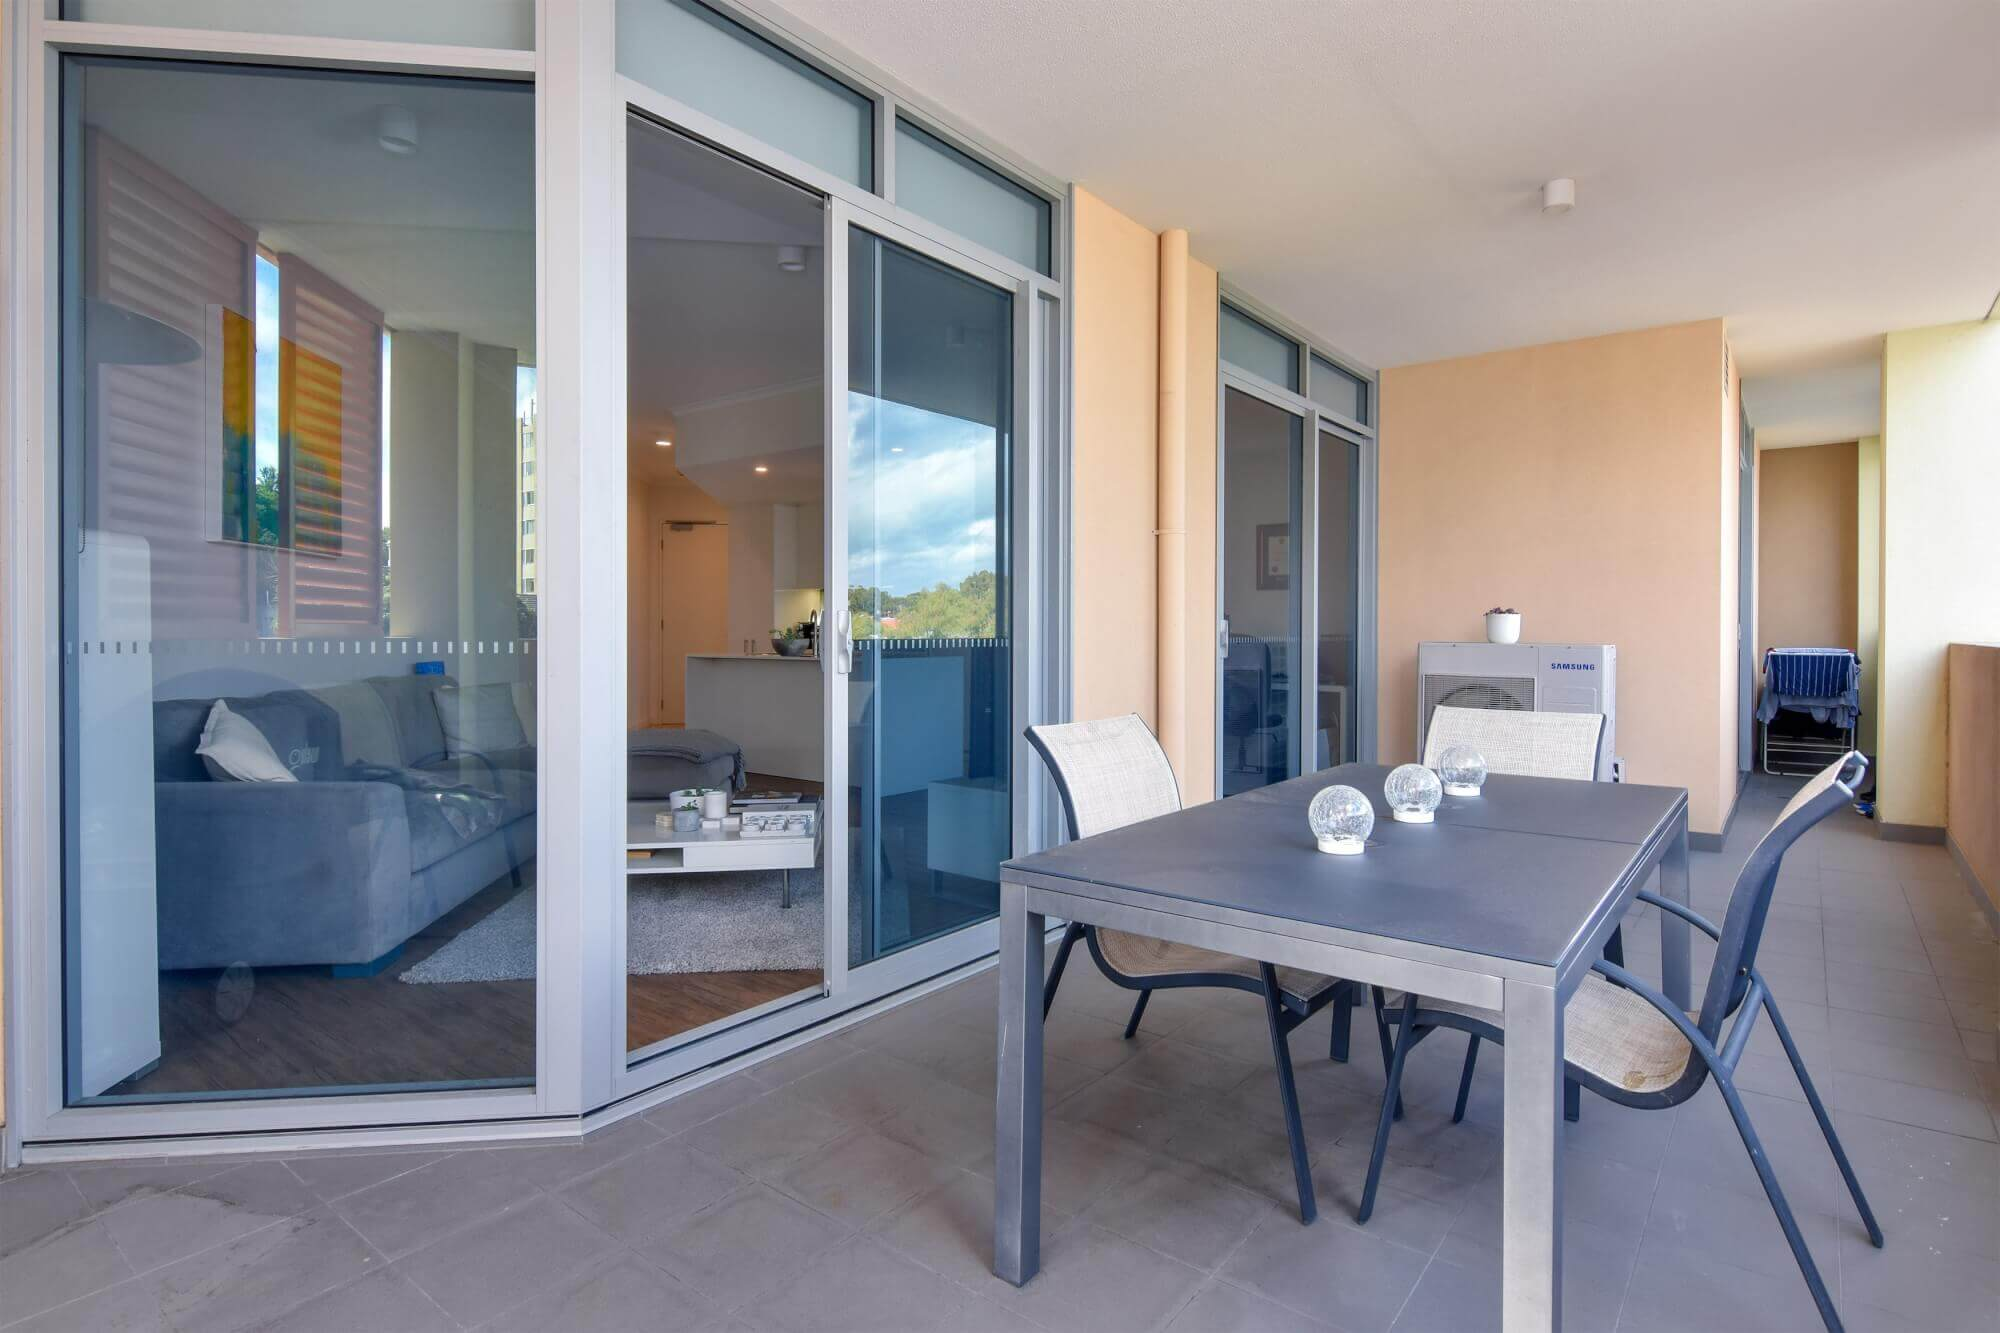 21/1 Silas Street East Fremantle WA 6158